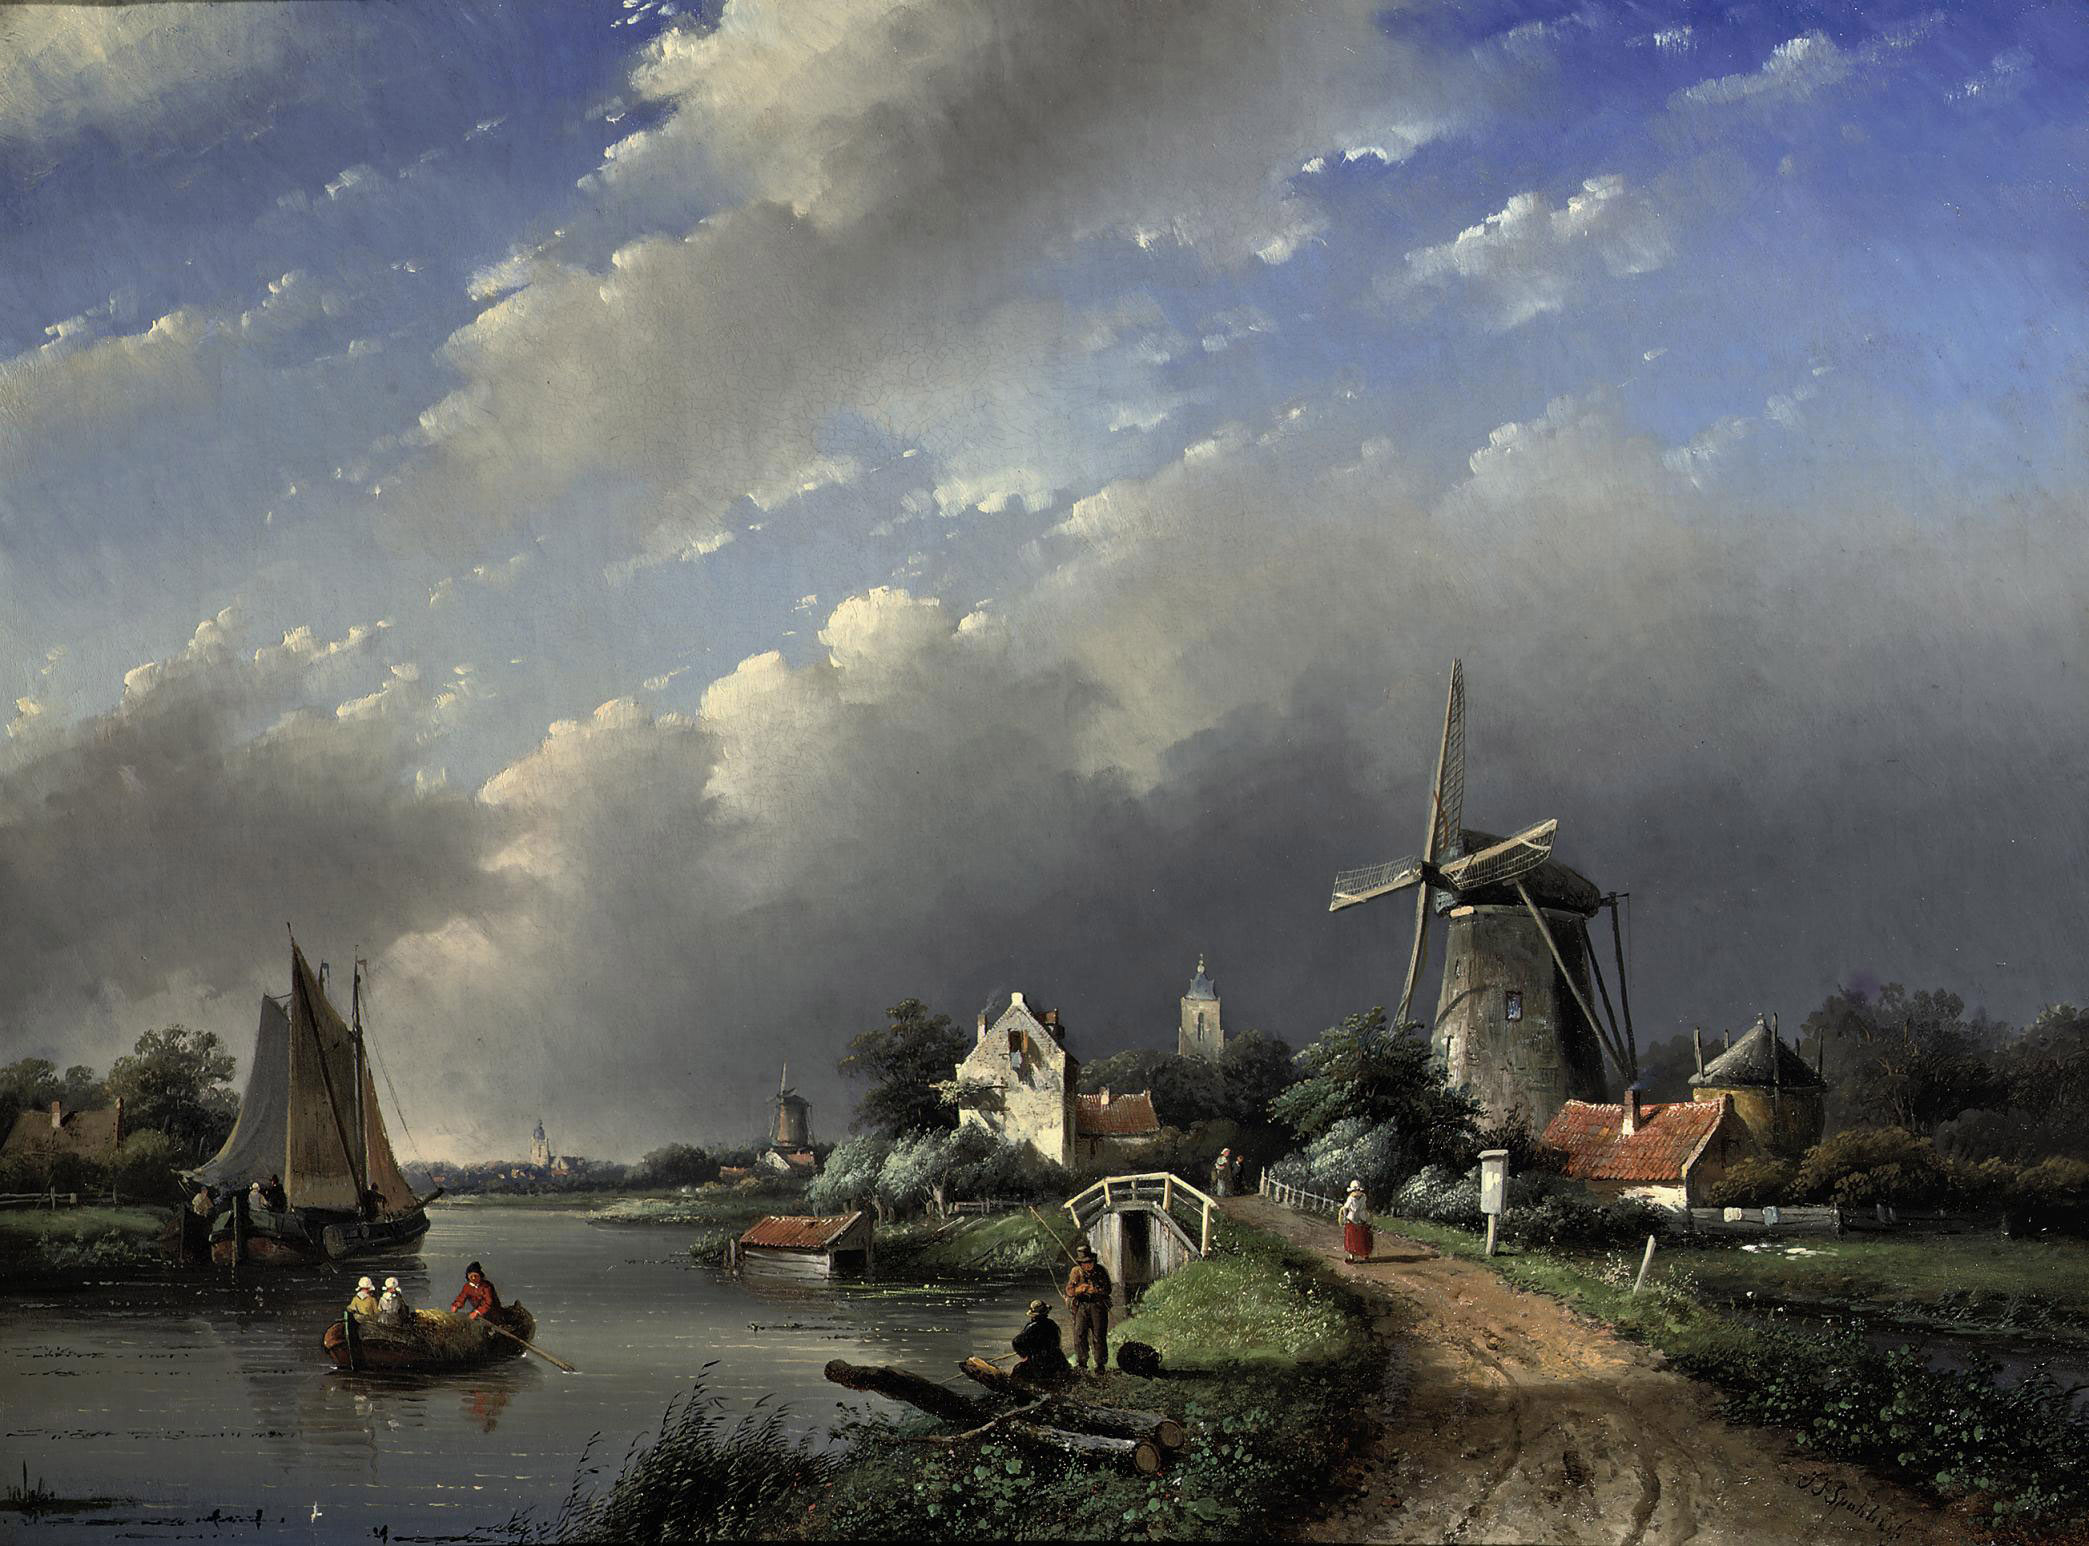 Activities on a Dutch river